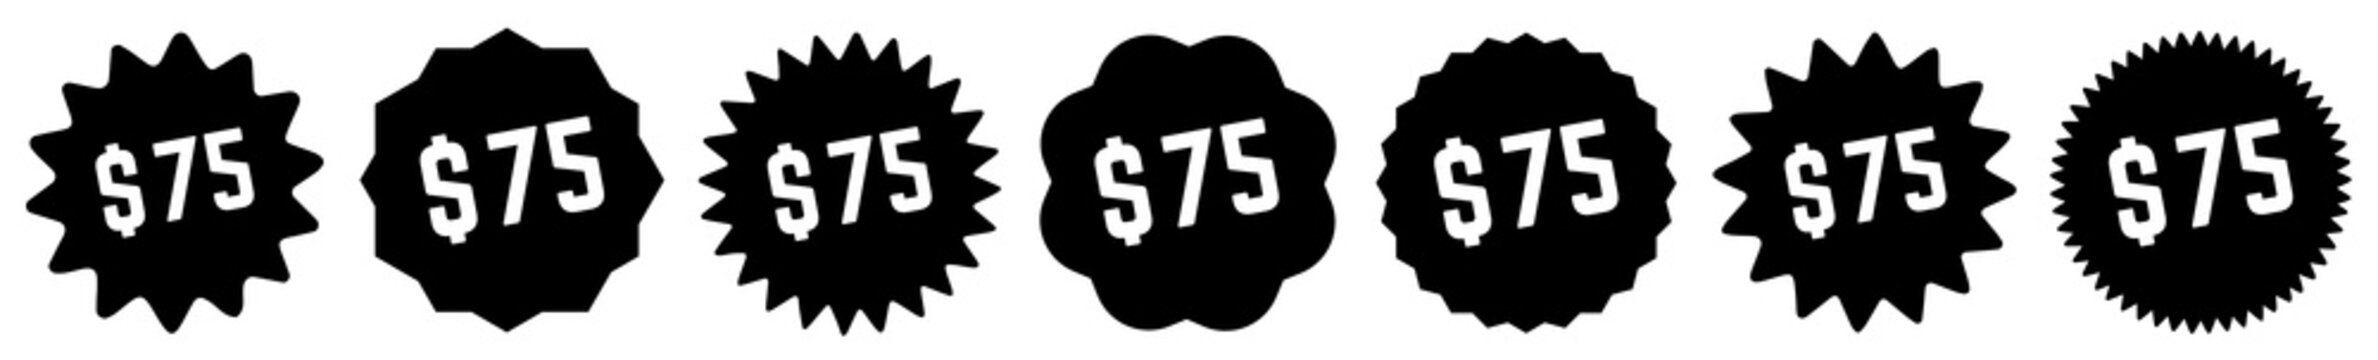 75 Price Tag Black | 75 Dollar | Special Offer Icon | Sale Sticker | Deal Label | Variations